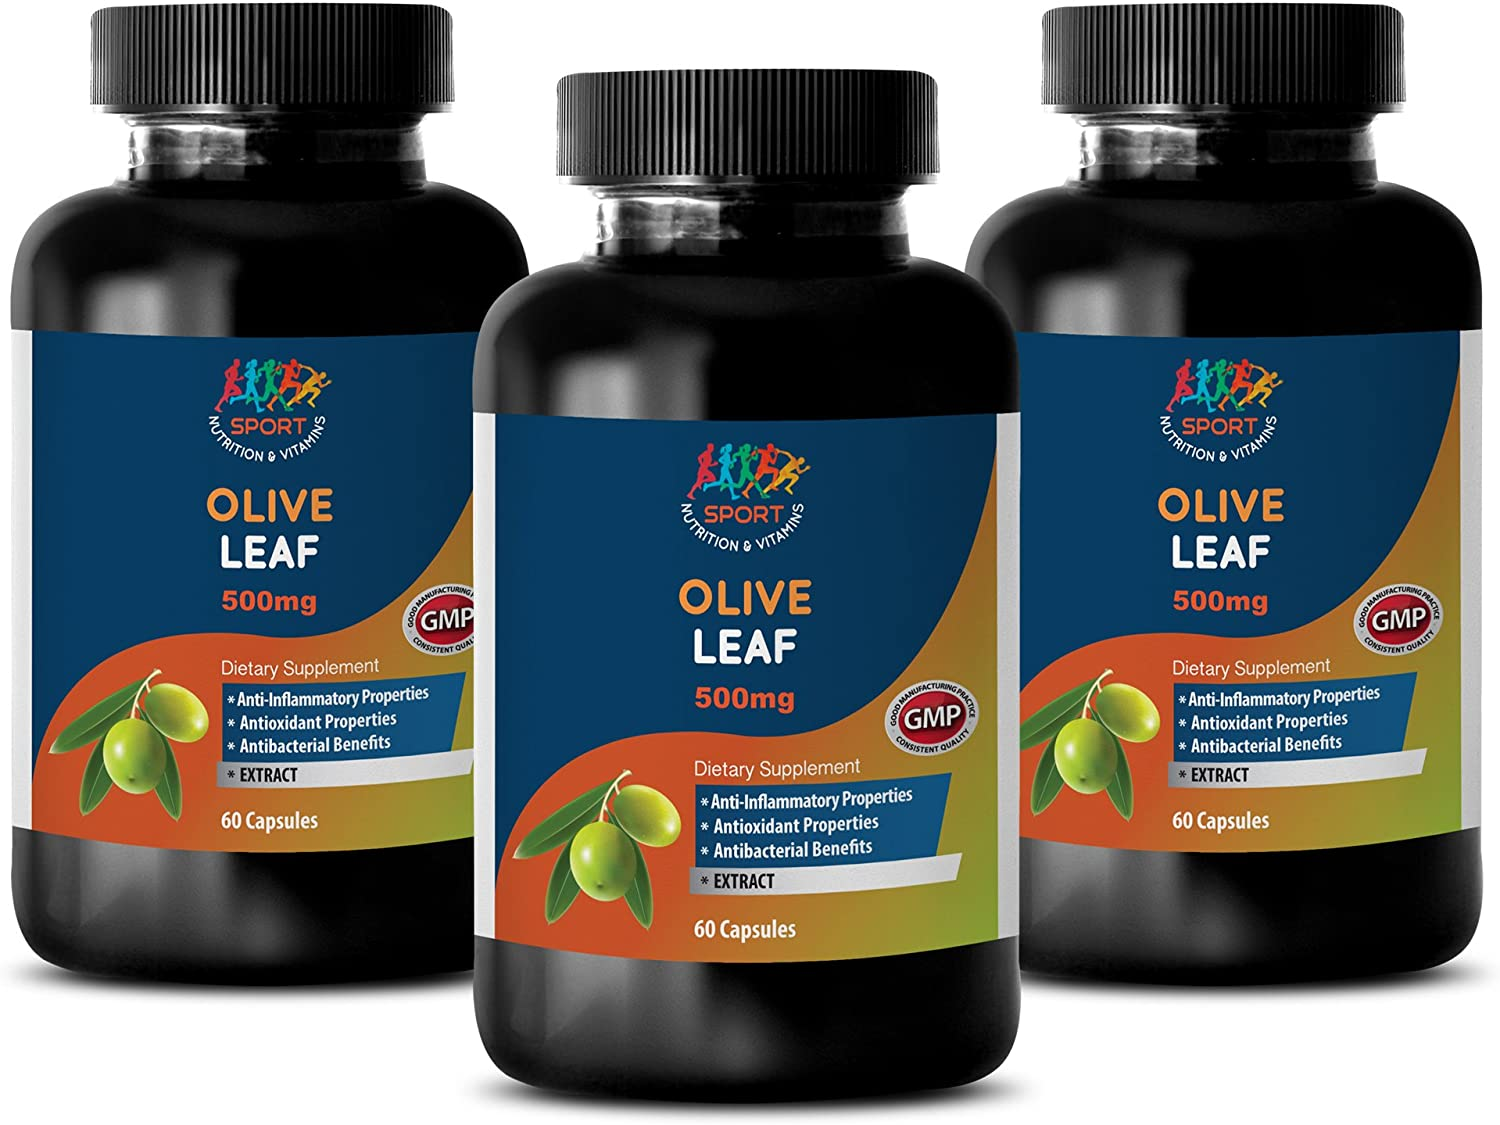 Immunity Booster Pills - Olive Leaf Extract 500mg - Supplements antioxidants - 3 Bottles 180 Capsules